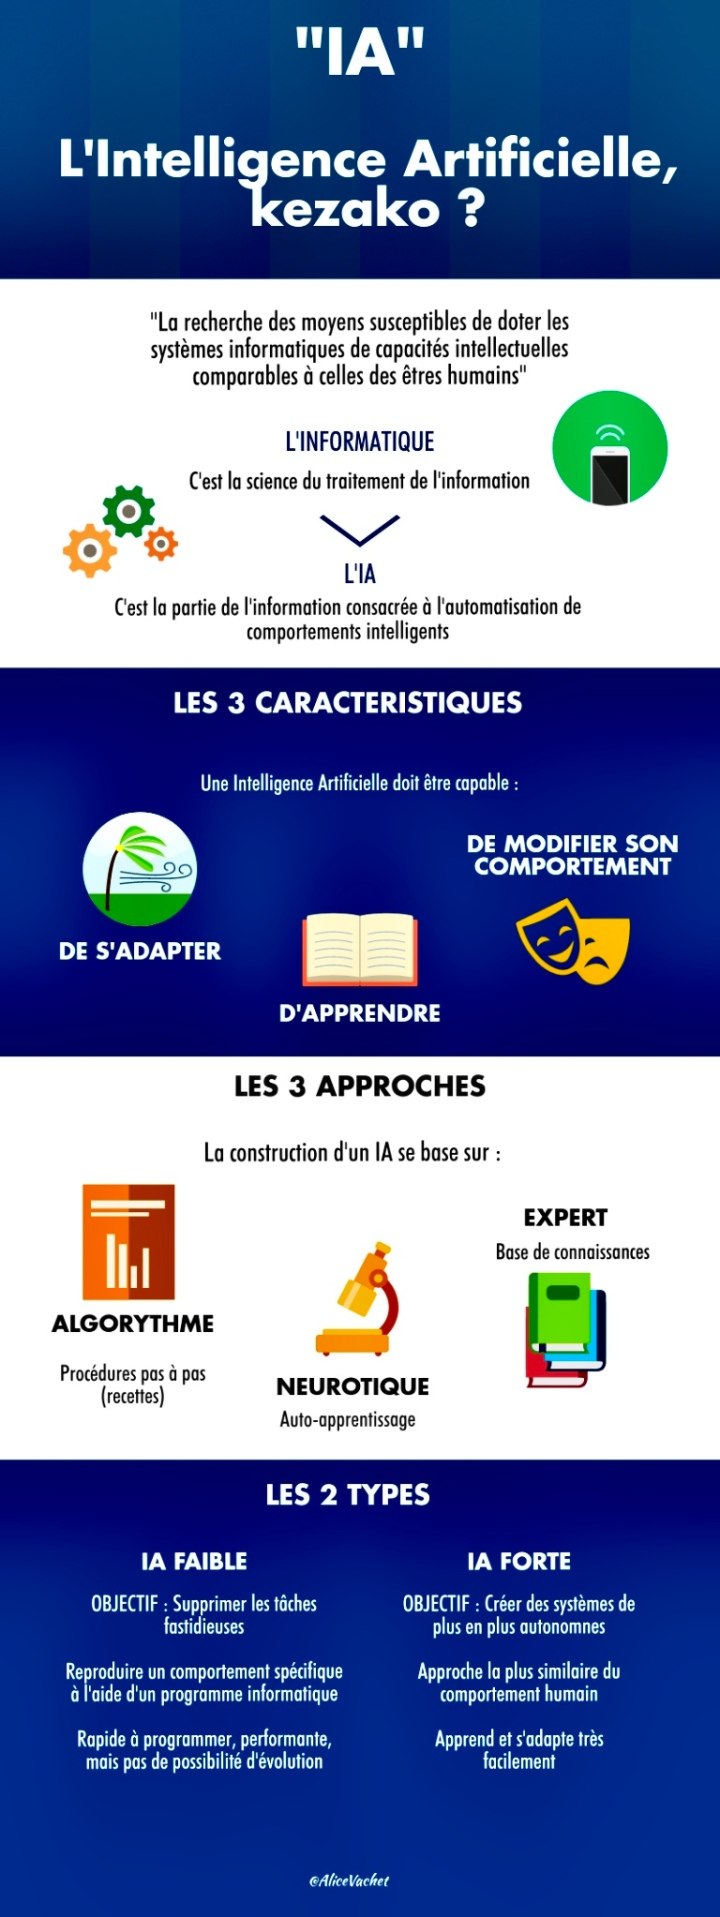 [Infographie] L'Intelligence Artificielle, Kezako ? 🧐